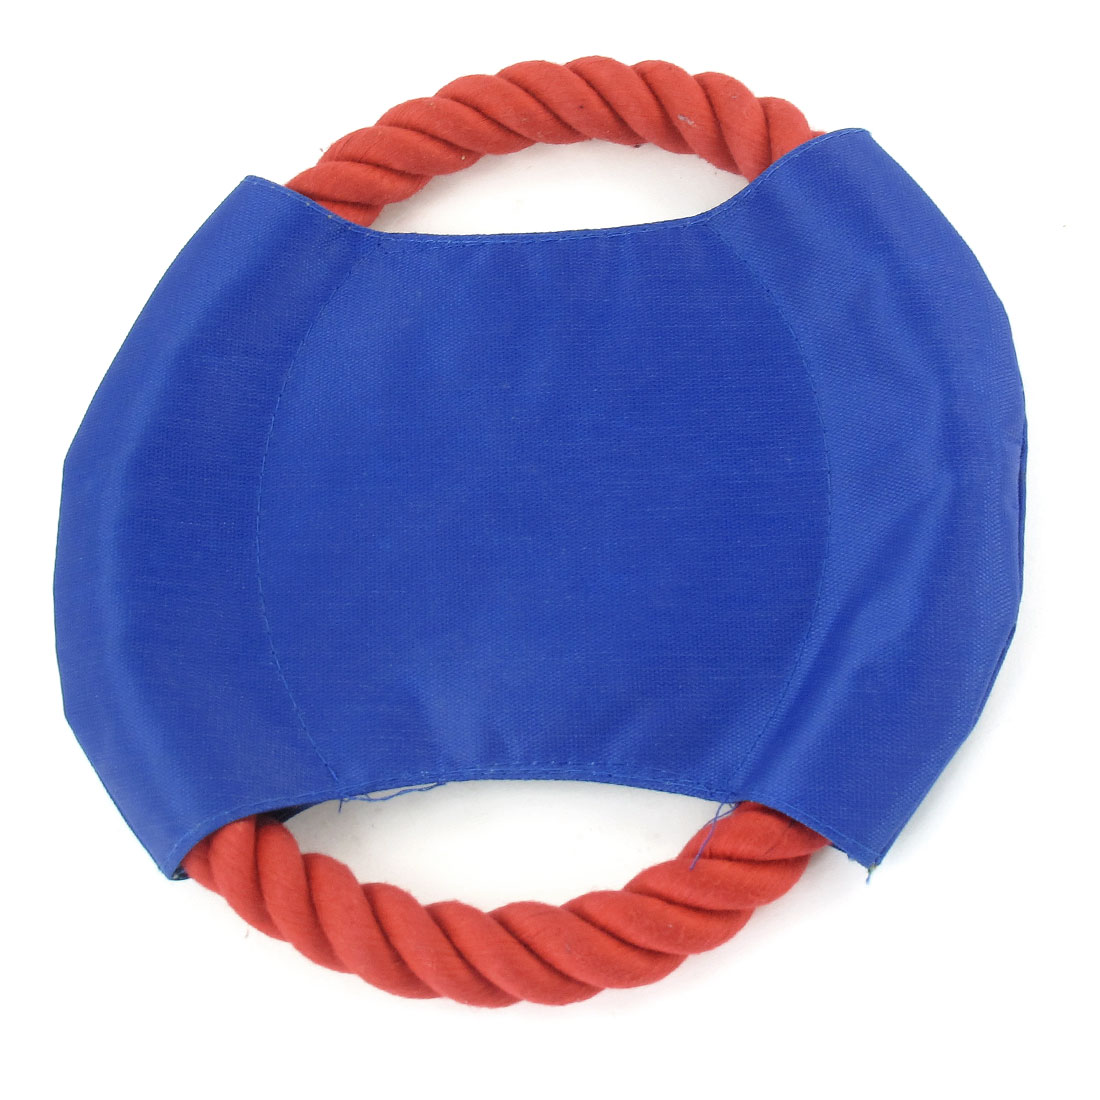 18cm Diameter Red Knit Cotton Rope Pet Dog Training Frisbee Toy Blue